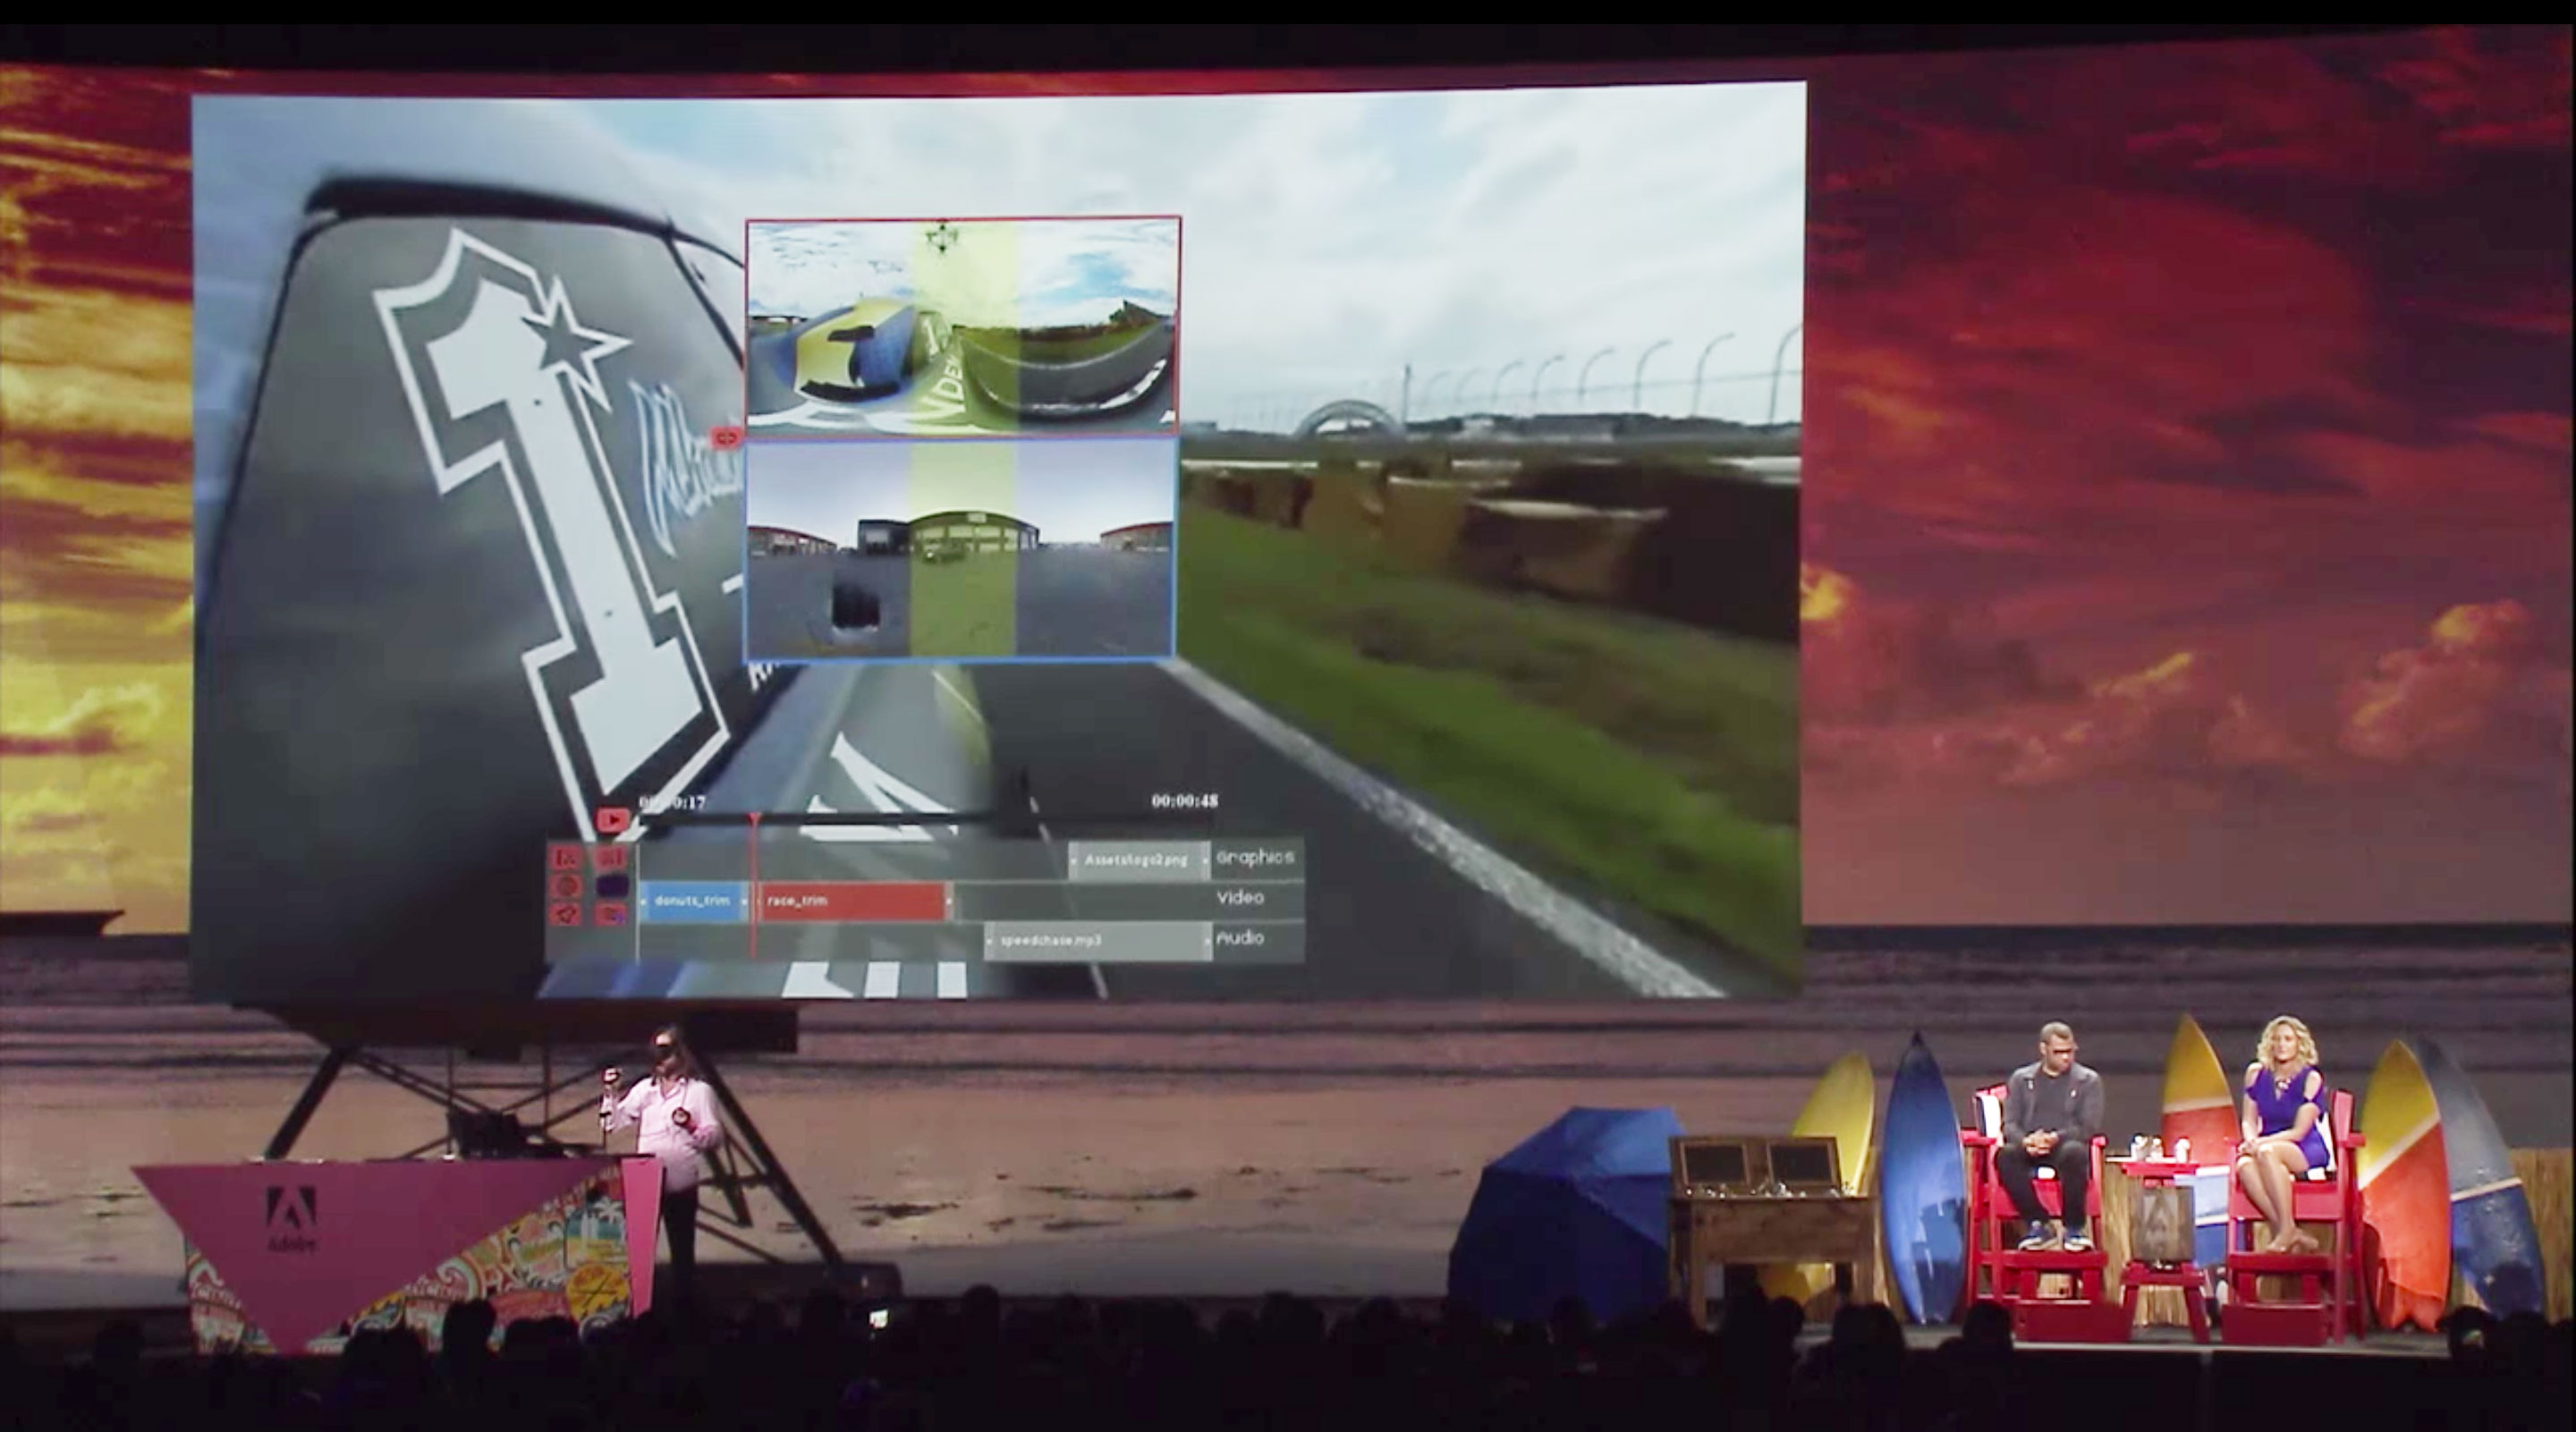 Adobe's Project Clover shows a timeline for editing VR video using a virtual reality headset.